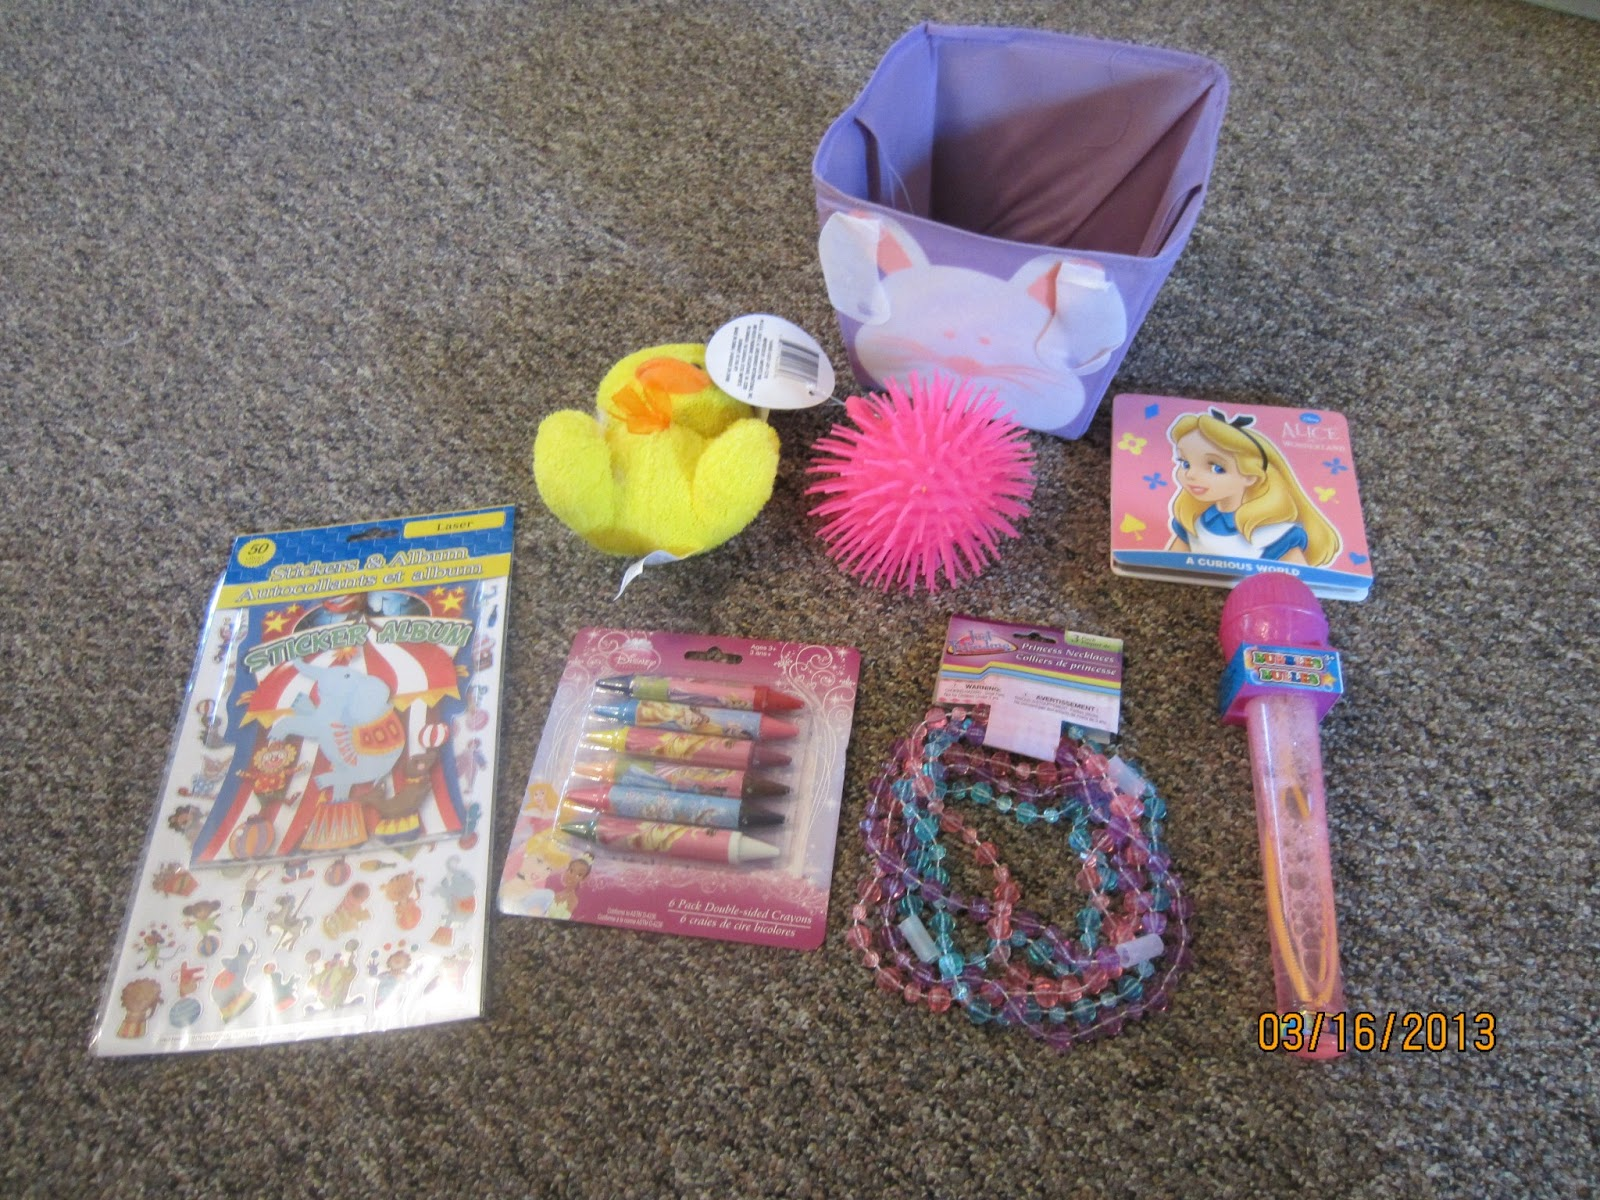 The best is yet to come candy free easter basket for a 1 year old so at the dollar tree we scored her super cute purple easter basket bubbles an alice in wonderland board book a 3 pack of necklaces negle Image collections